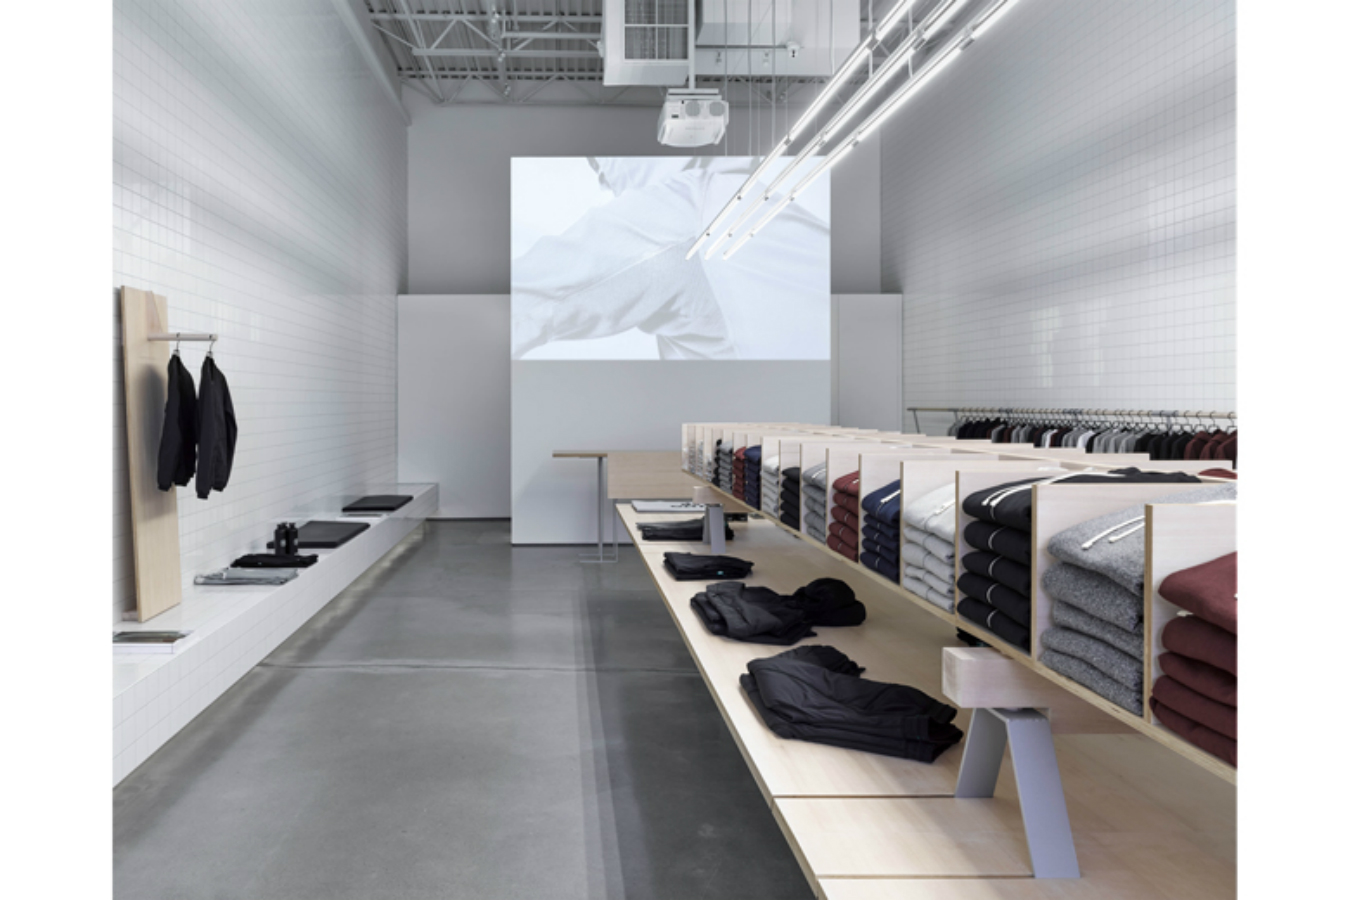 ee845b30382 Reigning Champ Vancouver Flagship